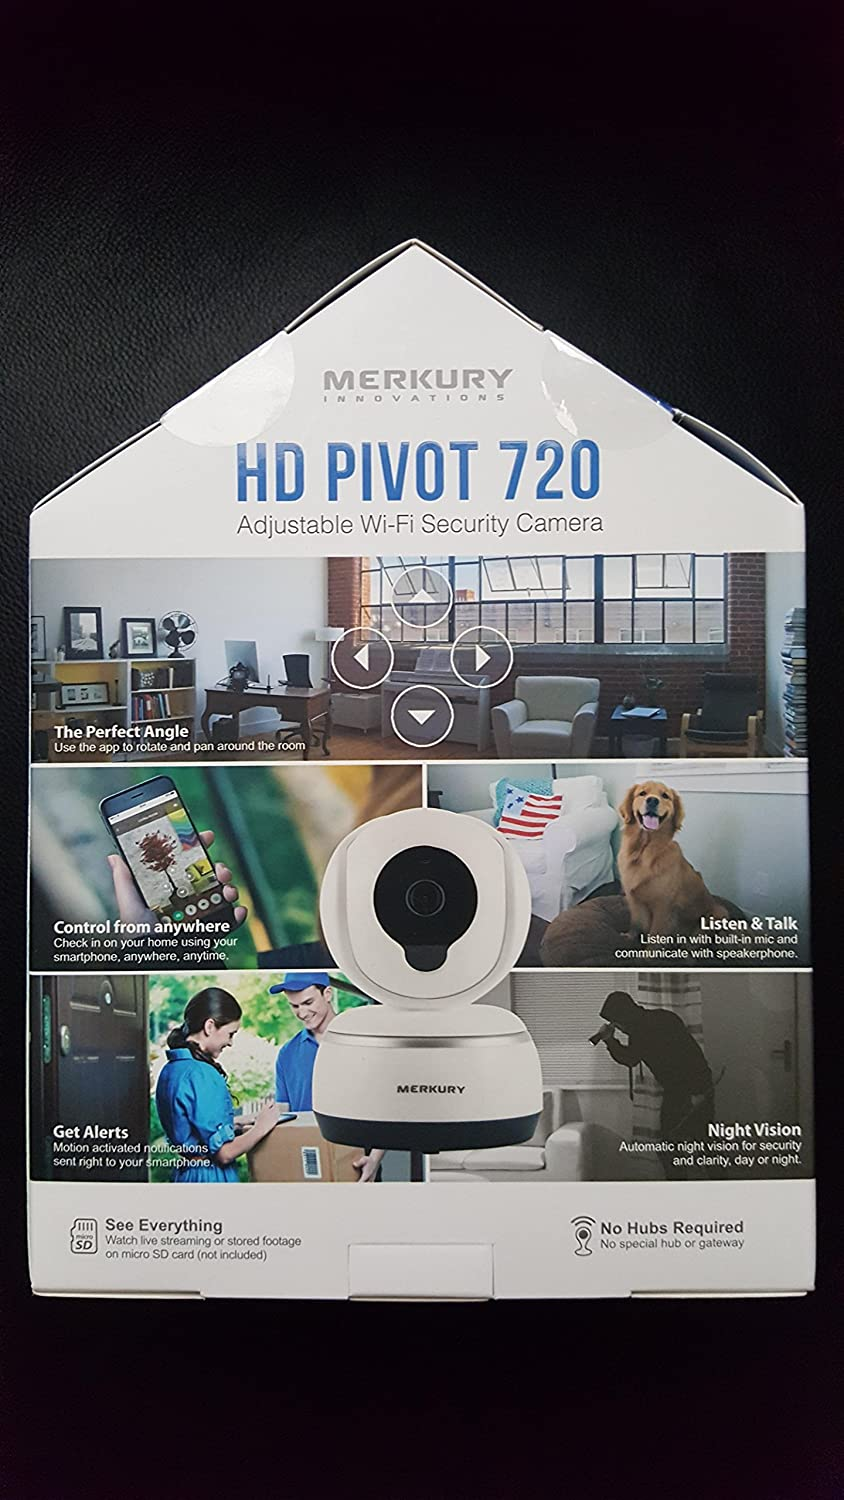 Amazon.com: Merkury Innovations HD Pivot 720 Adjustable Wi-Fi Security Camera: Home Improvement